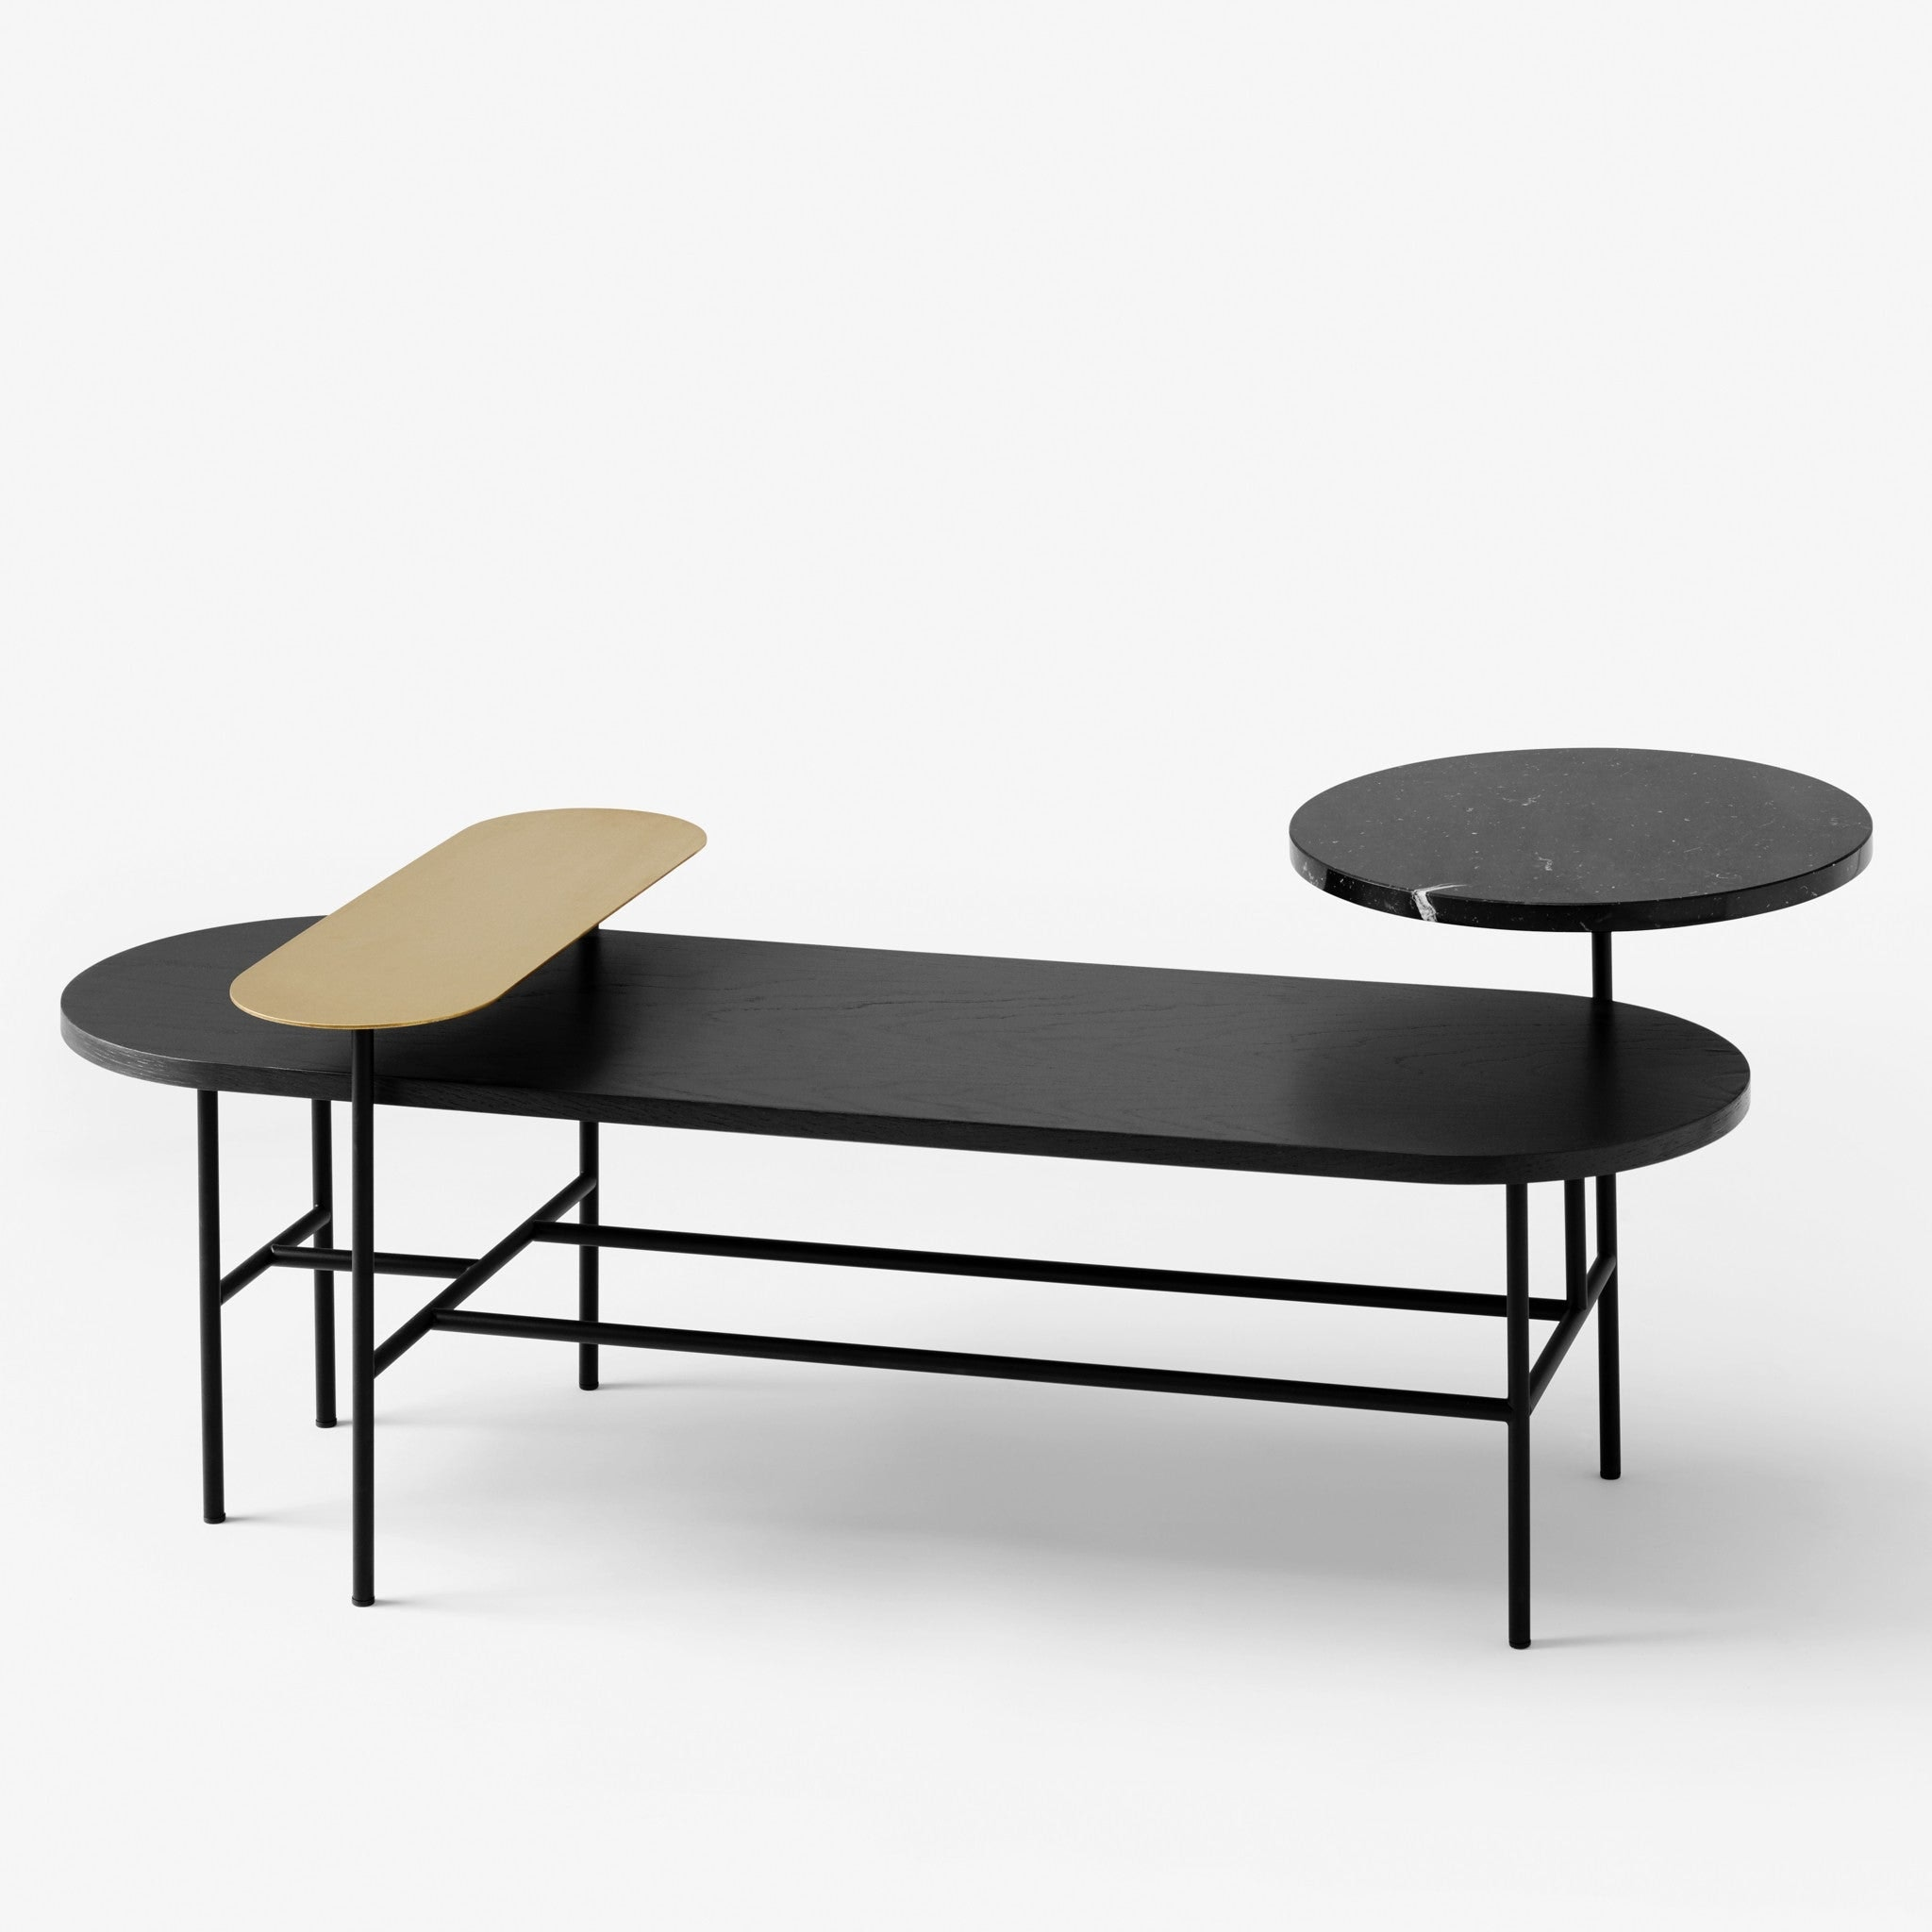 Palette Table JH7 by Jaime Hayon